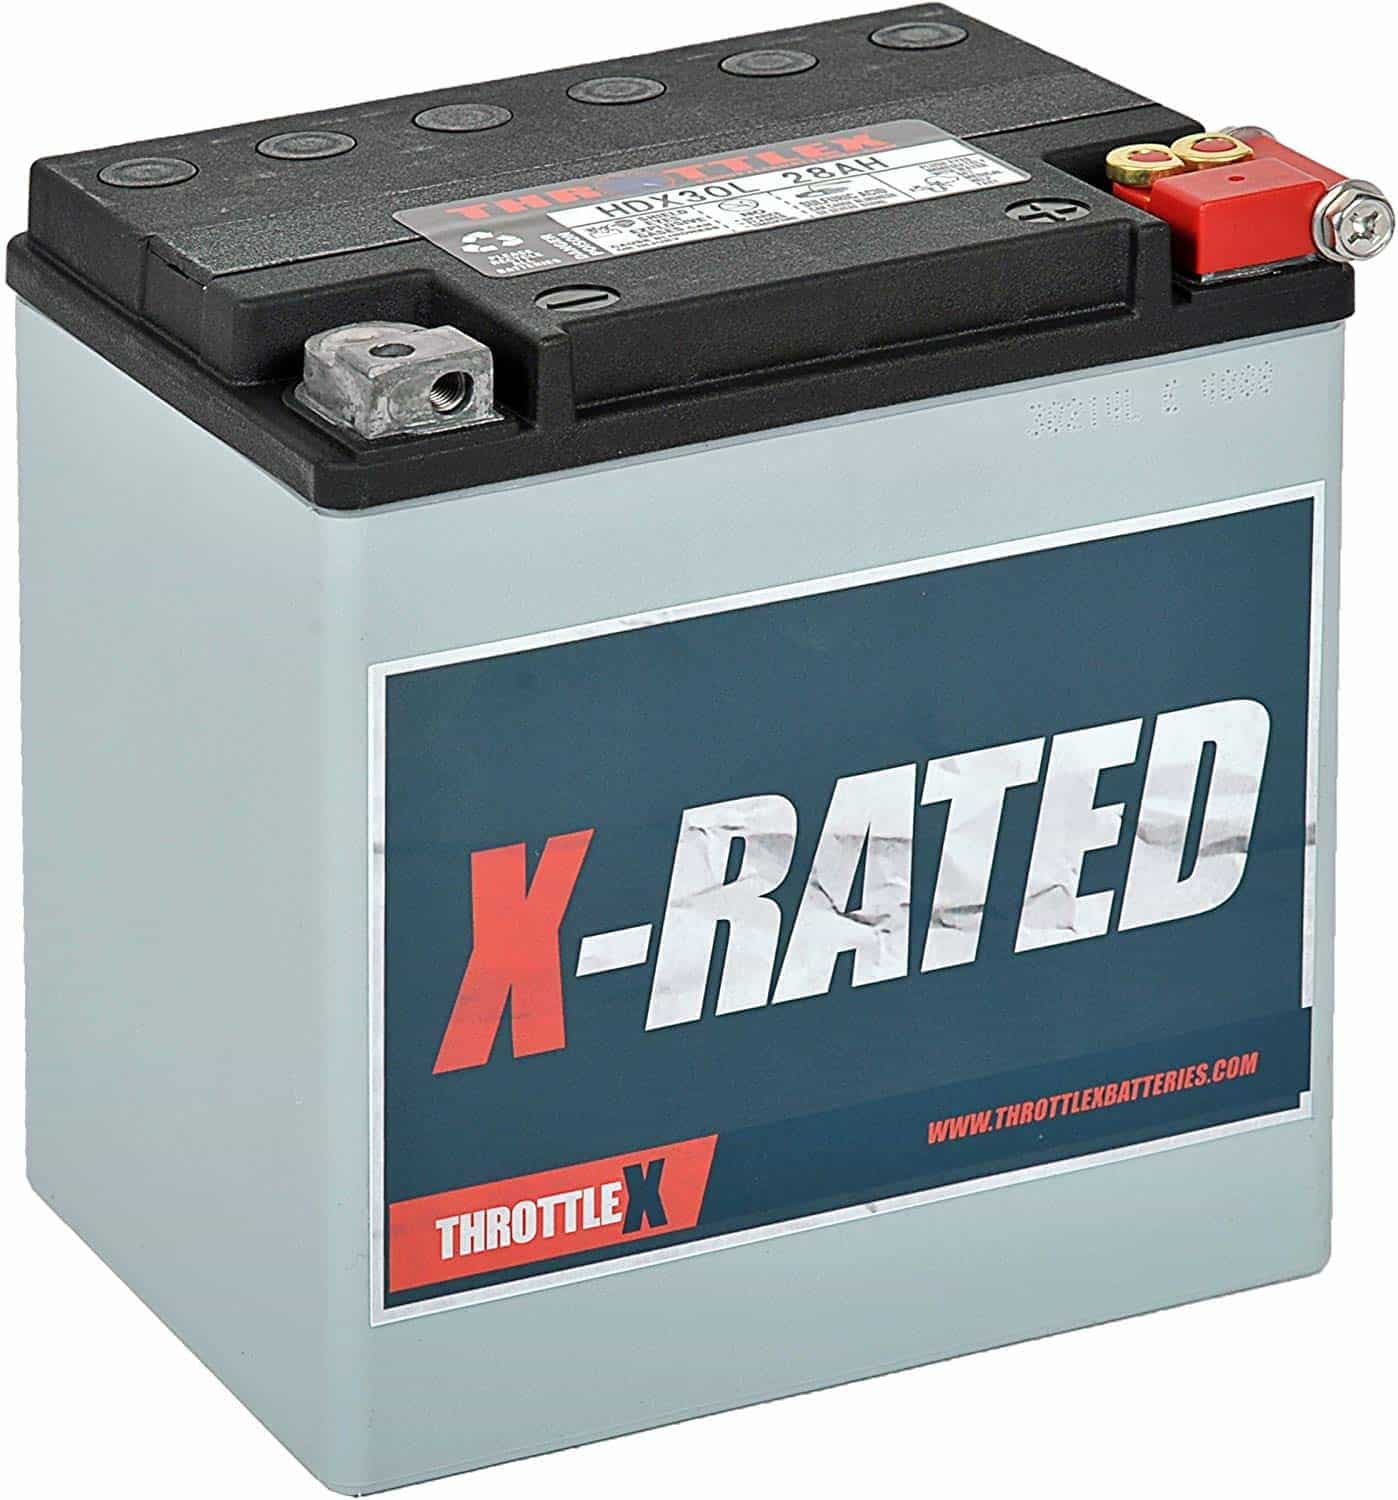 THROTTLEX_HDX30L_Harley_Davidson_Replacement_Motorcycle_Battery